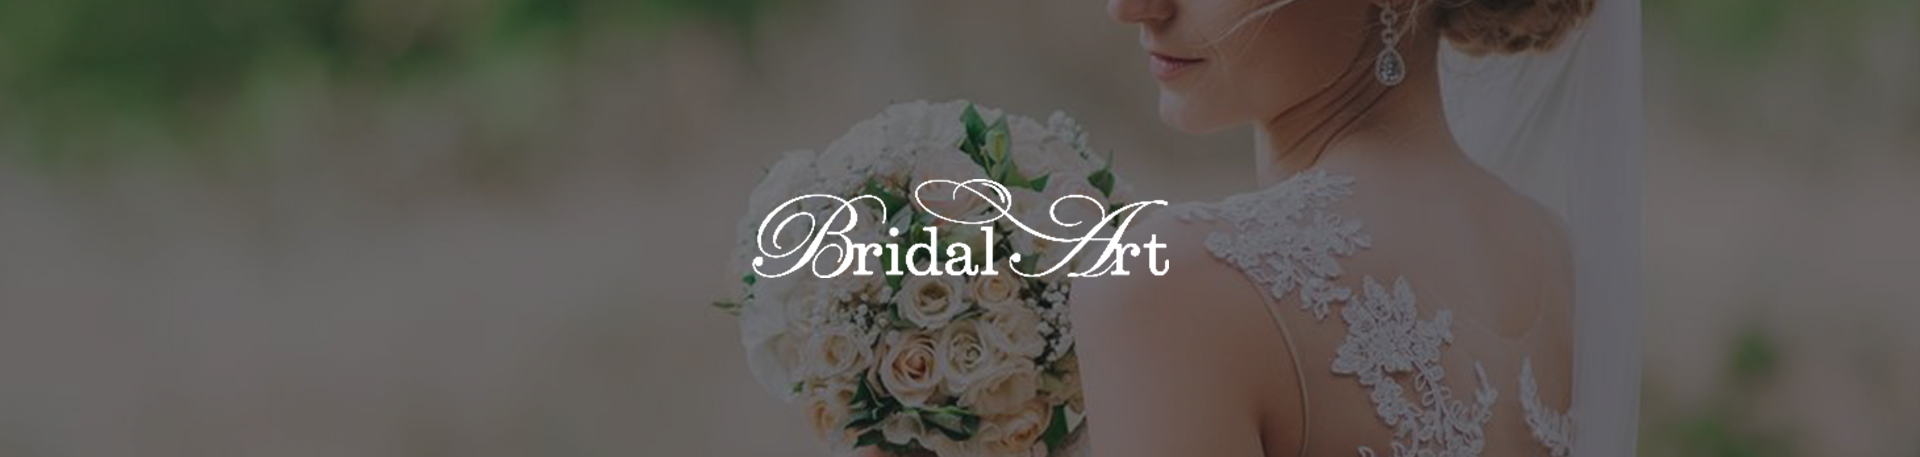 bridalart cover